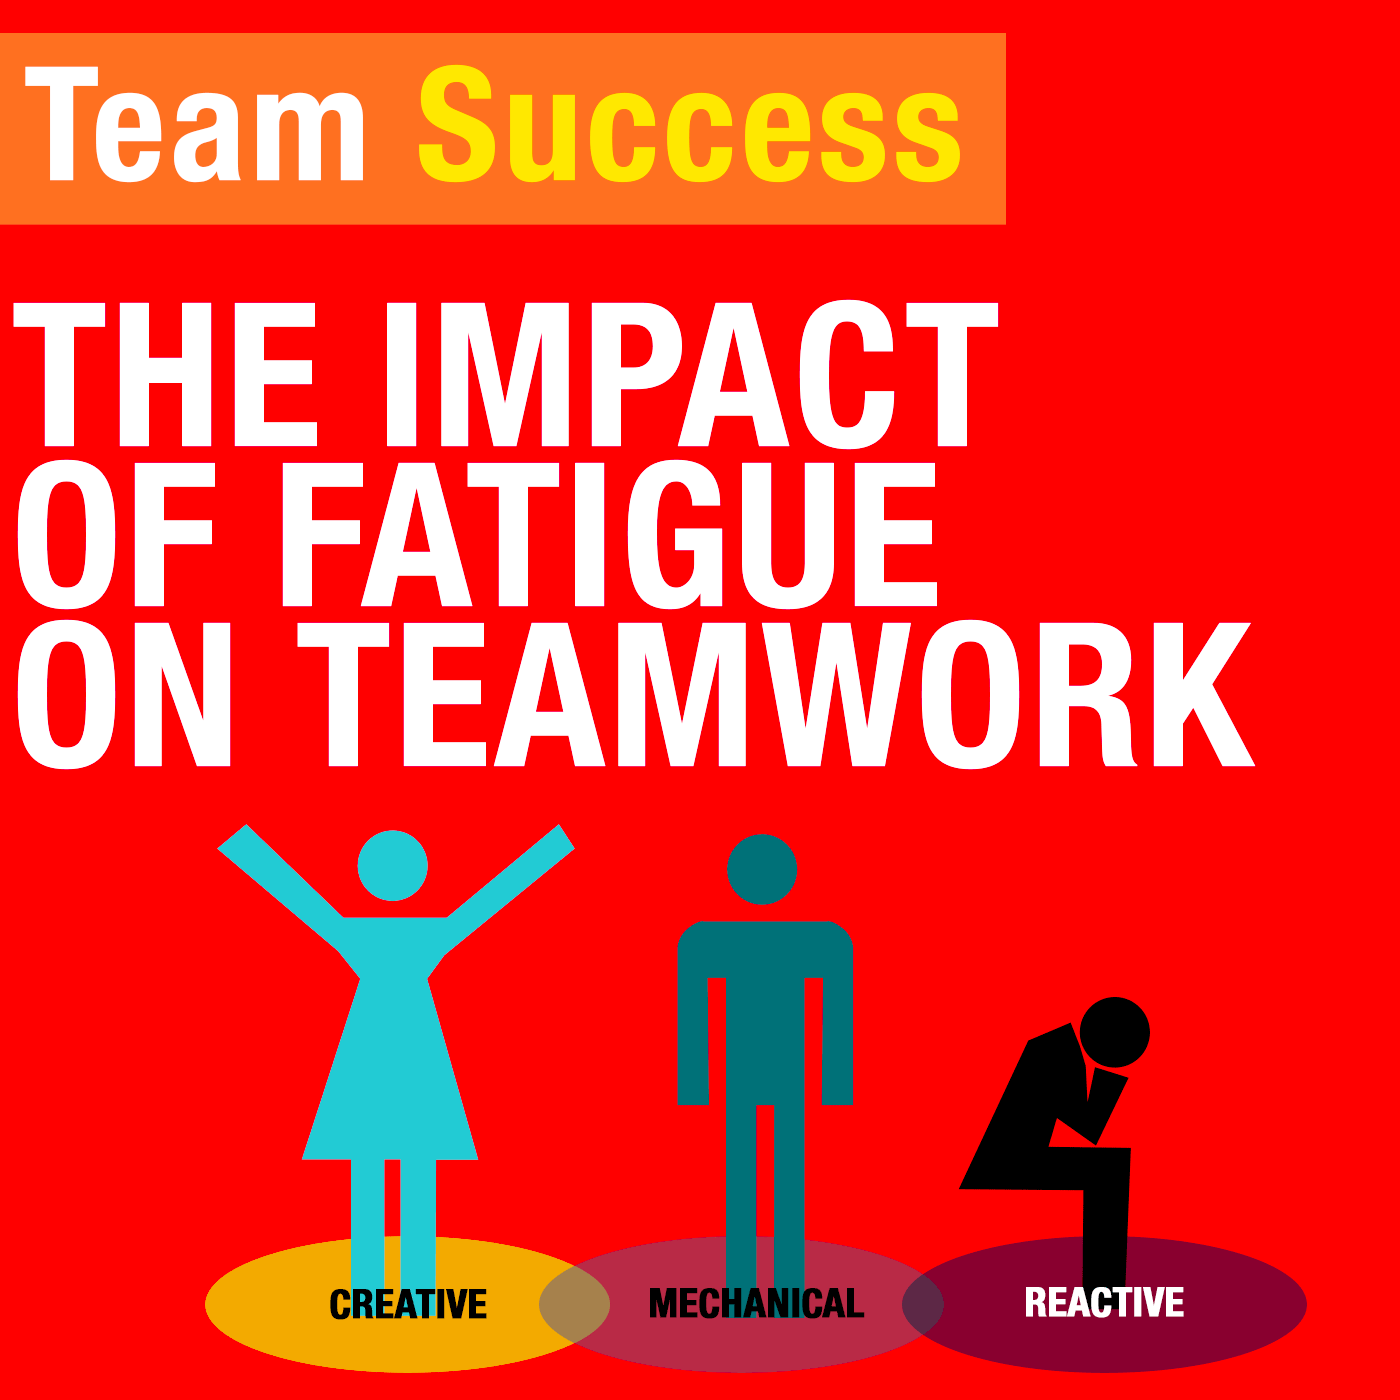 The Impact Of Fatigue On Teamwork